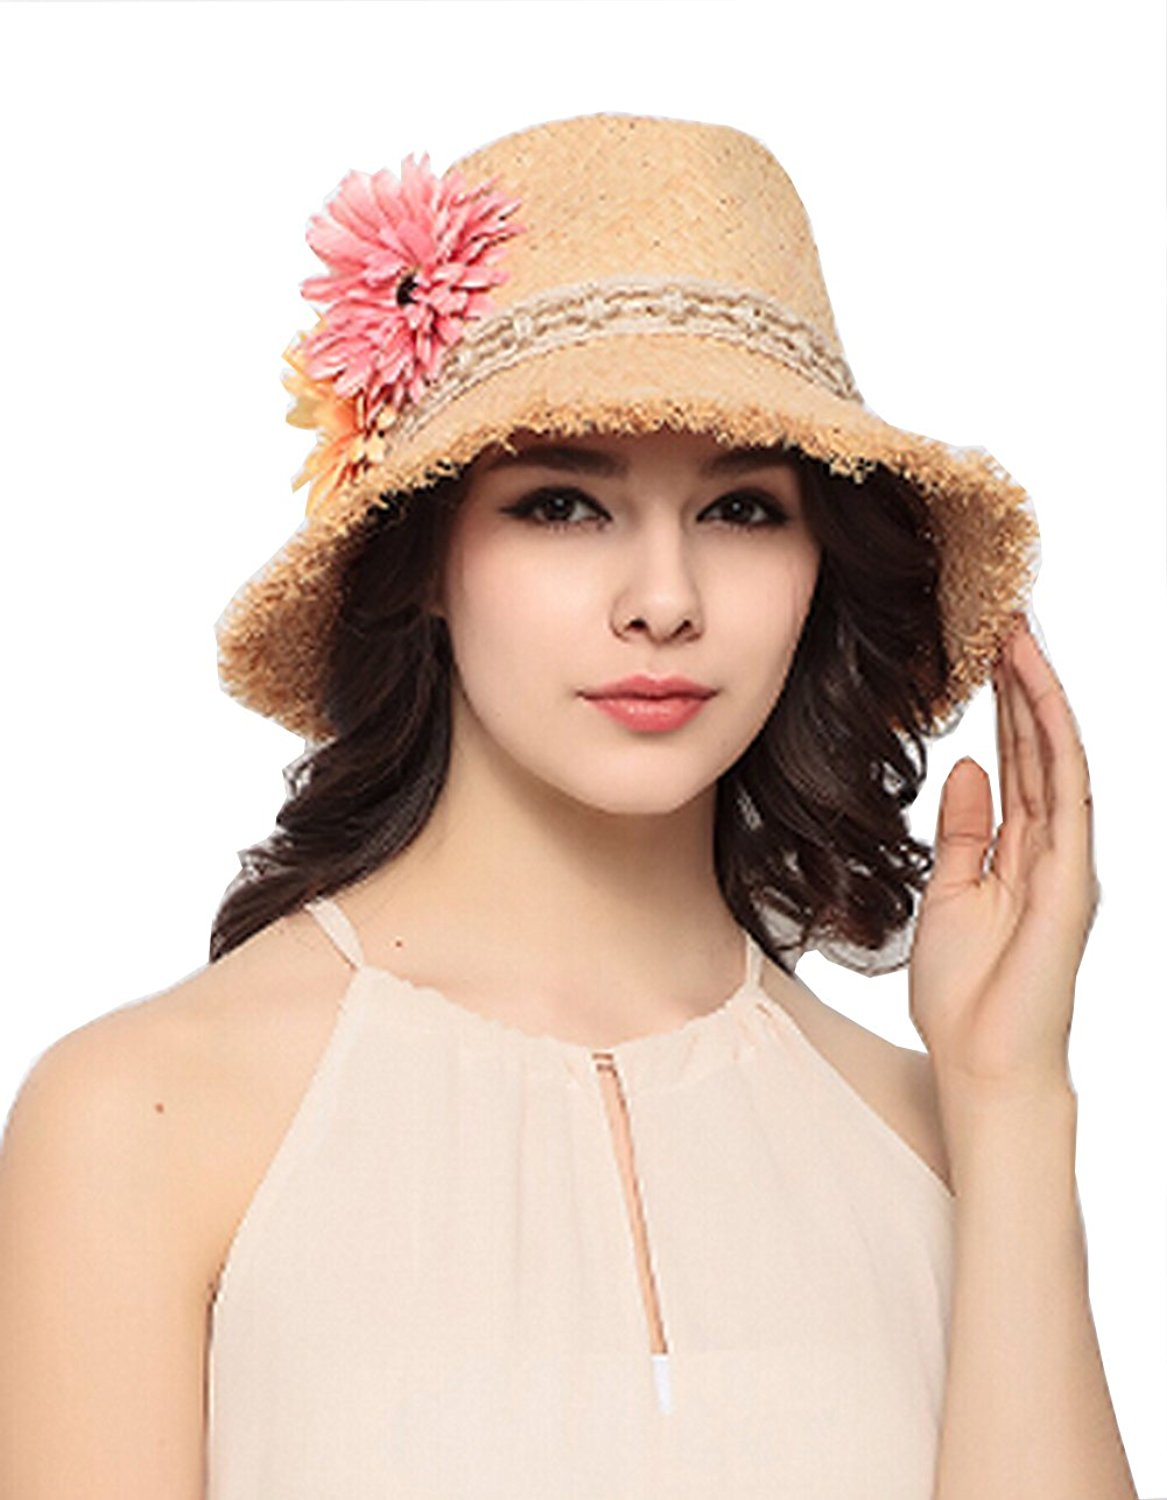 Km Lady High-end Fashion Raffia Hand-made Flower Modelling Beach Straw Sunhat